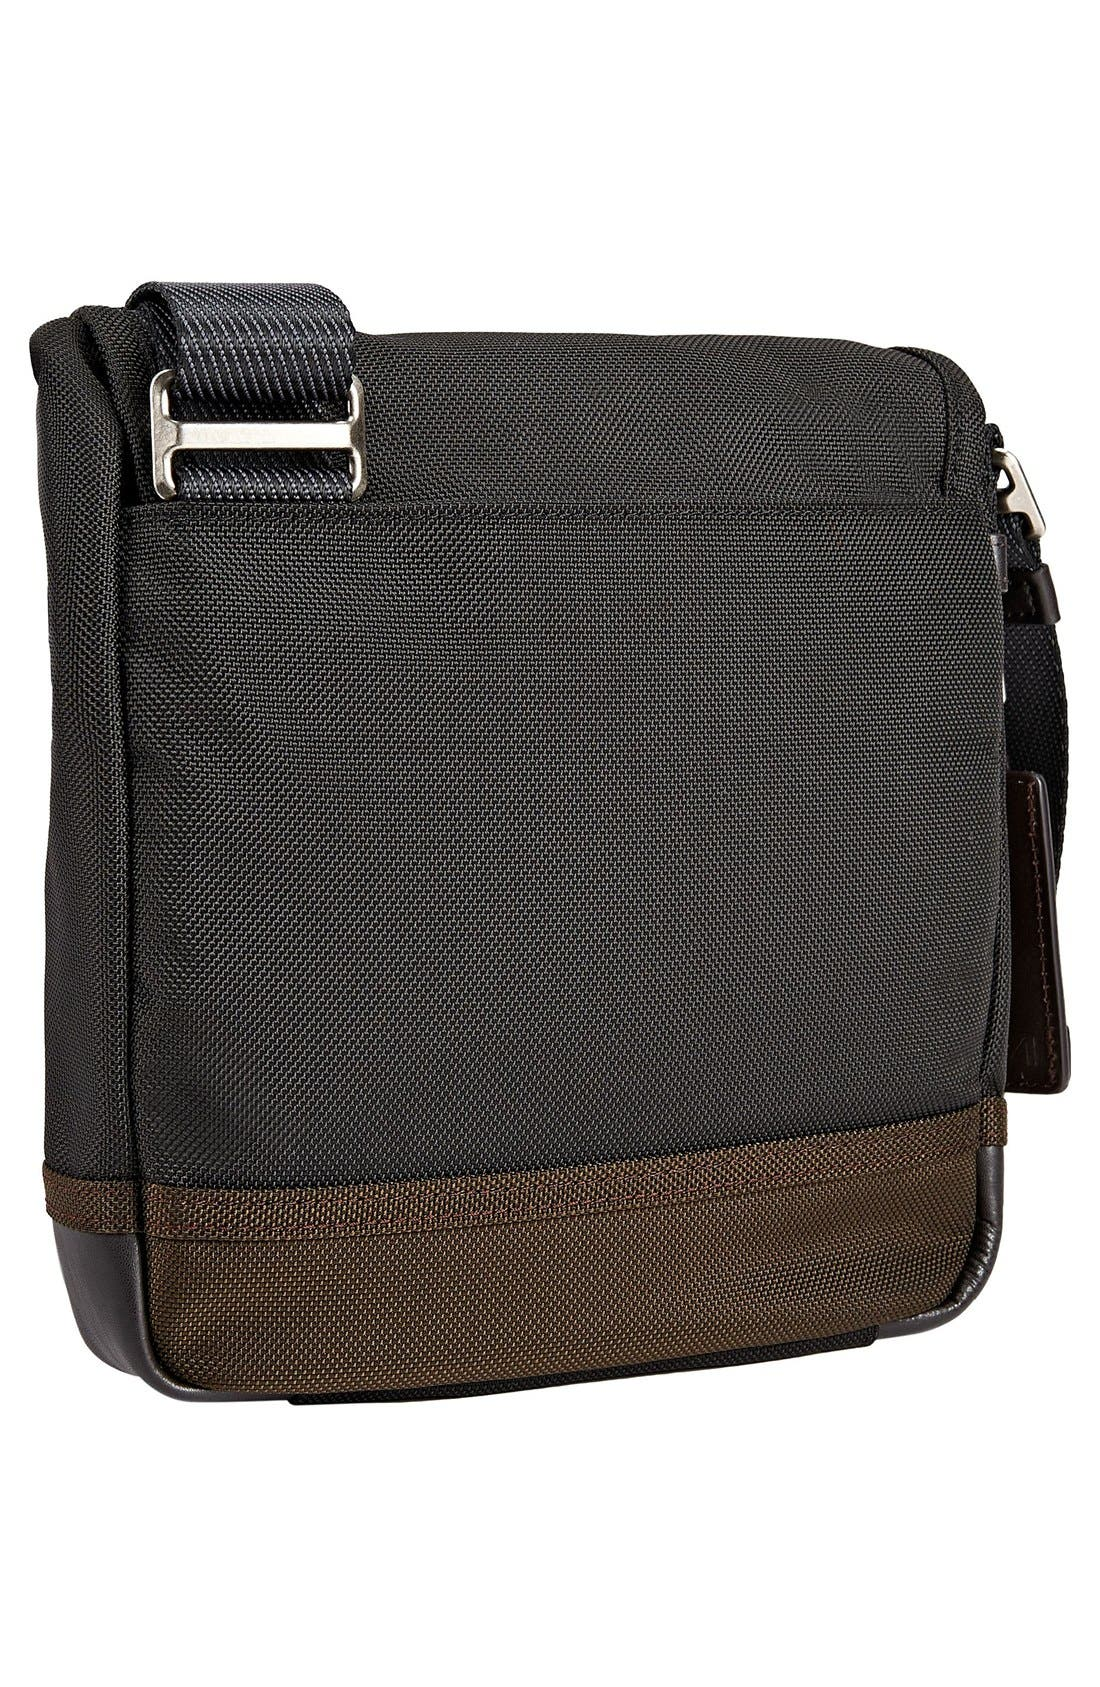 'Alpha Bravo - Barstow' Crossbody Bag,                             Alternate thumbnail 3, color,                             001